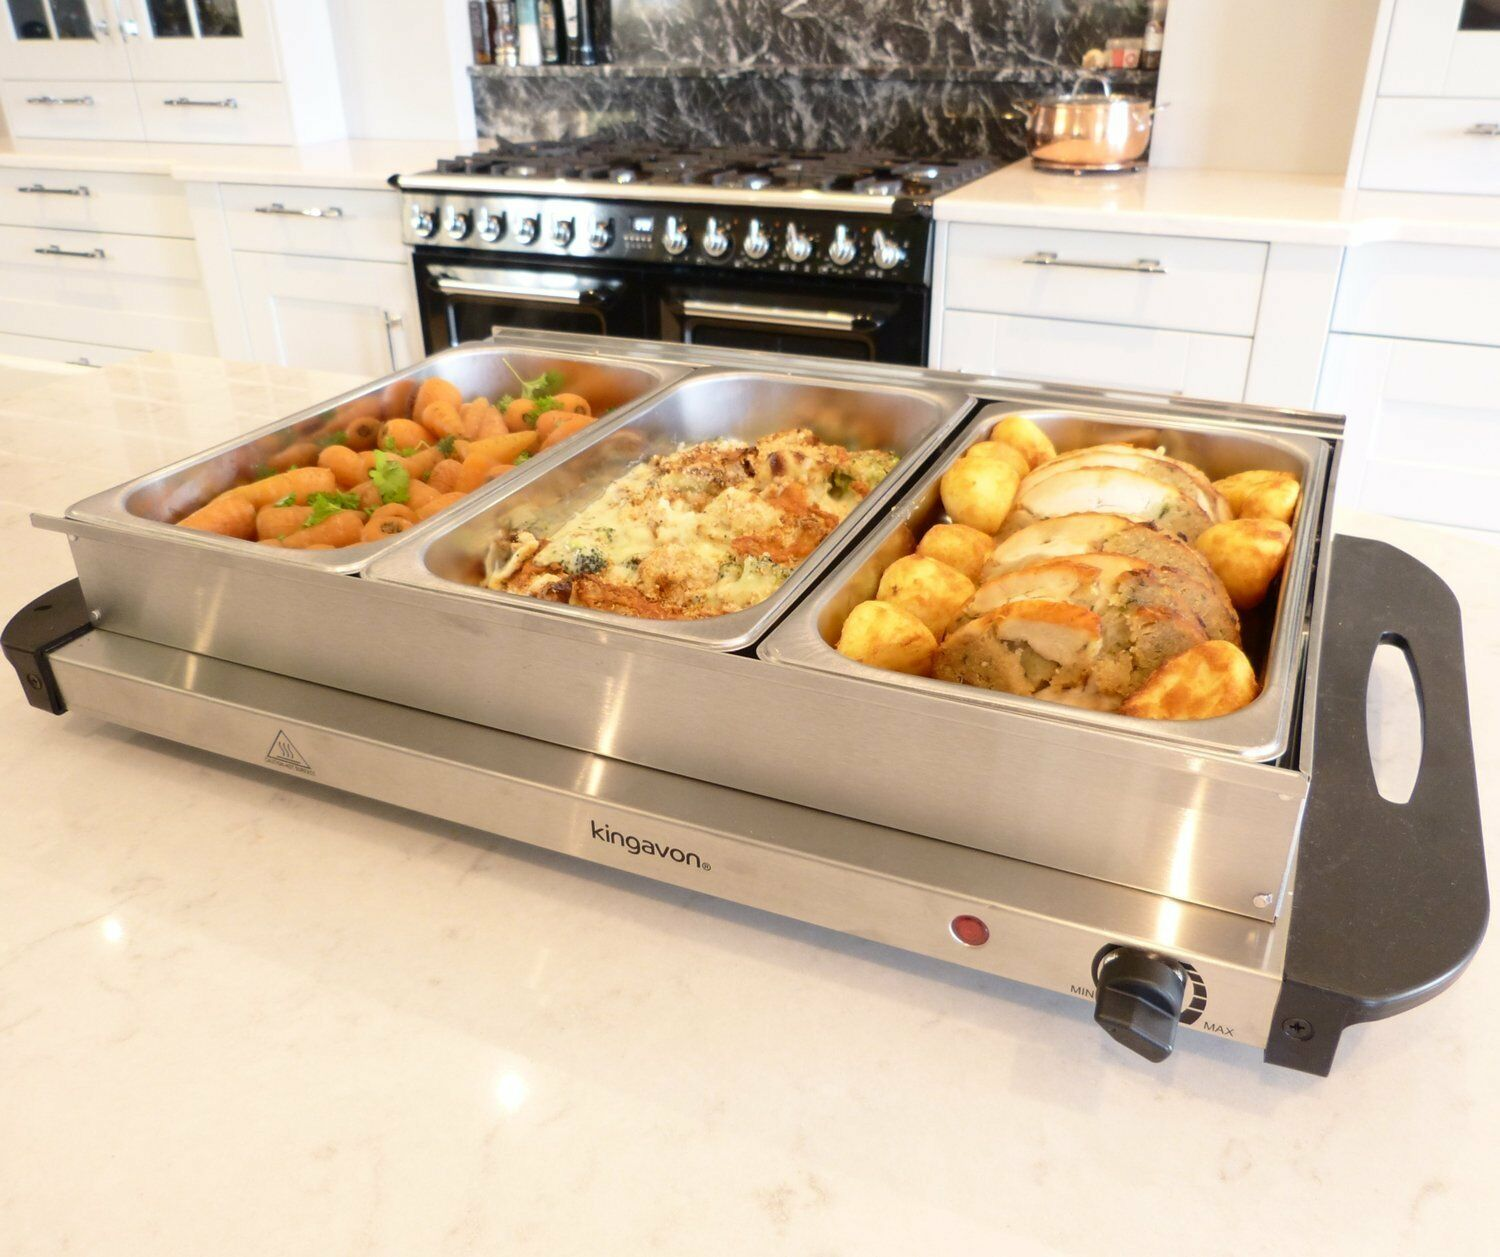 w stainless steel x l pan large buffet food server warmer 300w stainless steel 3x 2 5l pan large buffet food server warmer hot plate tray